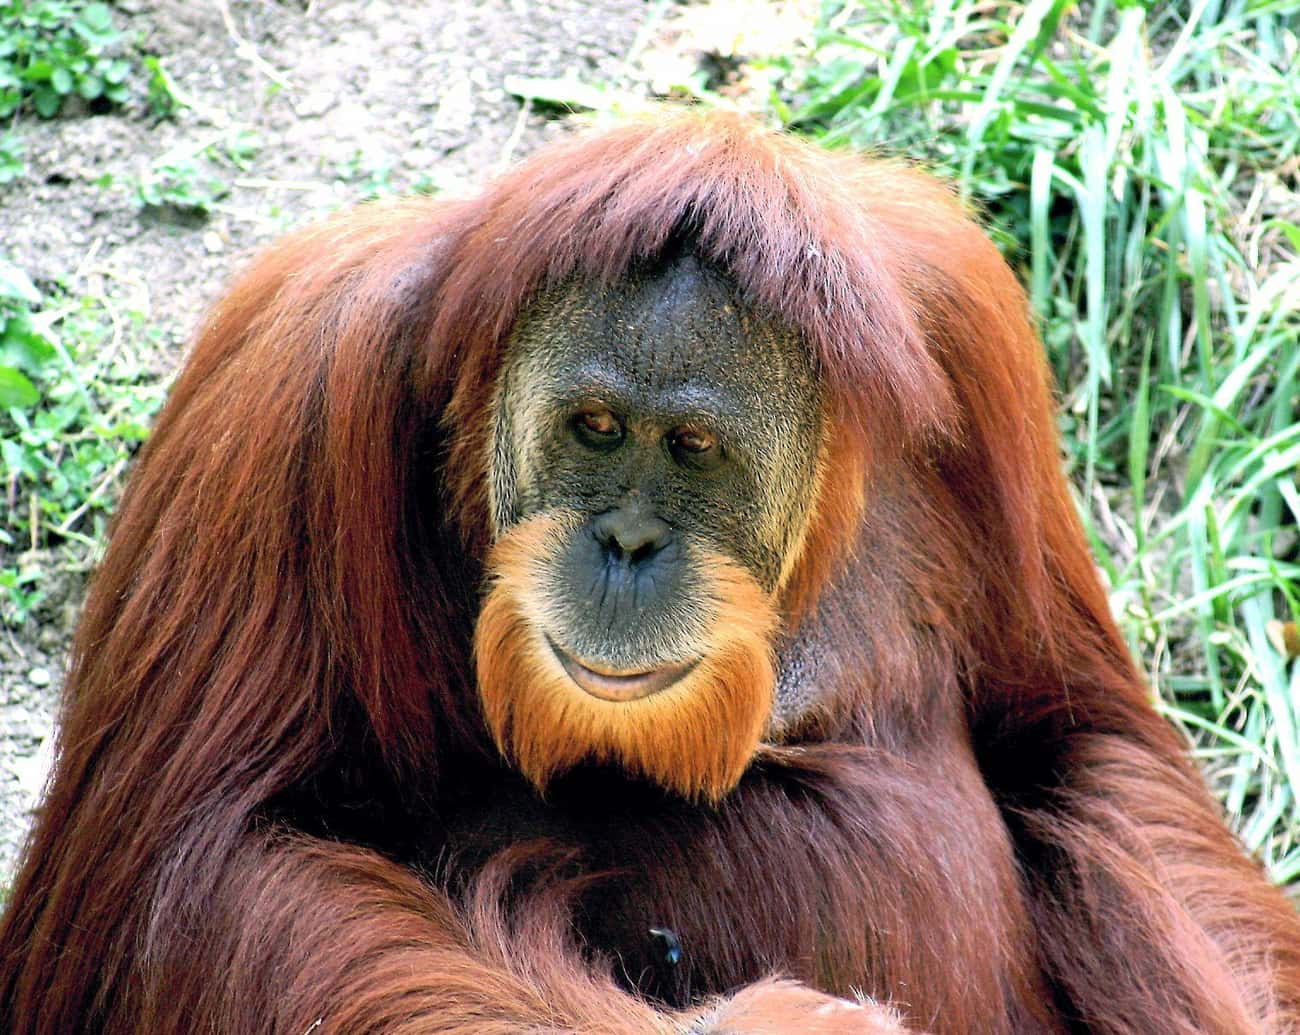 Ken Allen, The Orangutan, Esca is listed (or ranked) 3 on the list The Wildest Zoo Animal Escapes Of All Time